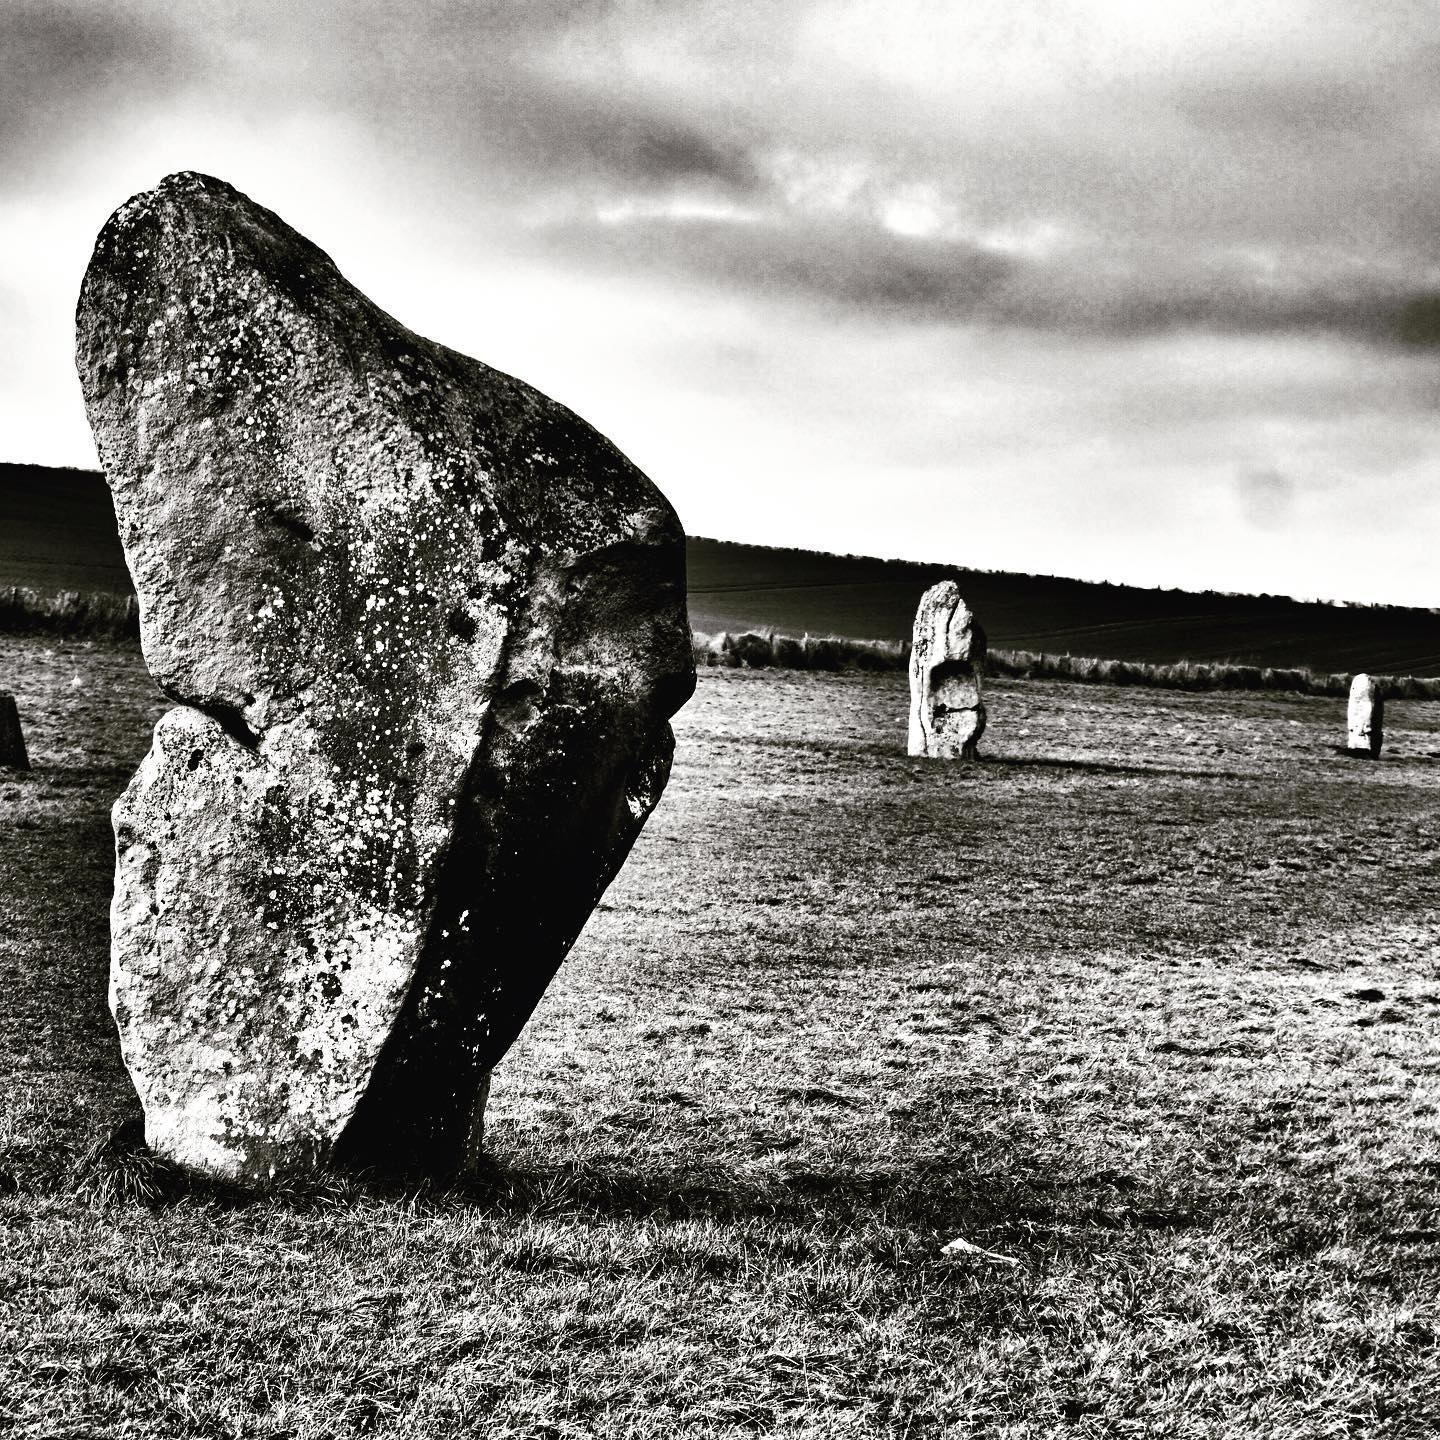 west kennet avenue. connects the sanctuary circles to avebury henge and circle on overton hill, overlooking older earlier neolithic sites like west kennet and east kennet long barrows. it shows the so called male and female stones said to make up the avenue. #westkennet #avenue #westkennetavenue #eastkennetlongbarrow #westkennetlongbarrow #thesanctuary #ceremonialsites #ceremonial #avebury #aveburyhenge #stonecircles #timbercircles #neolithic. montagecity.com